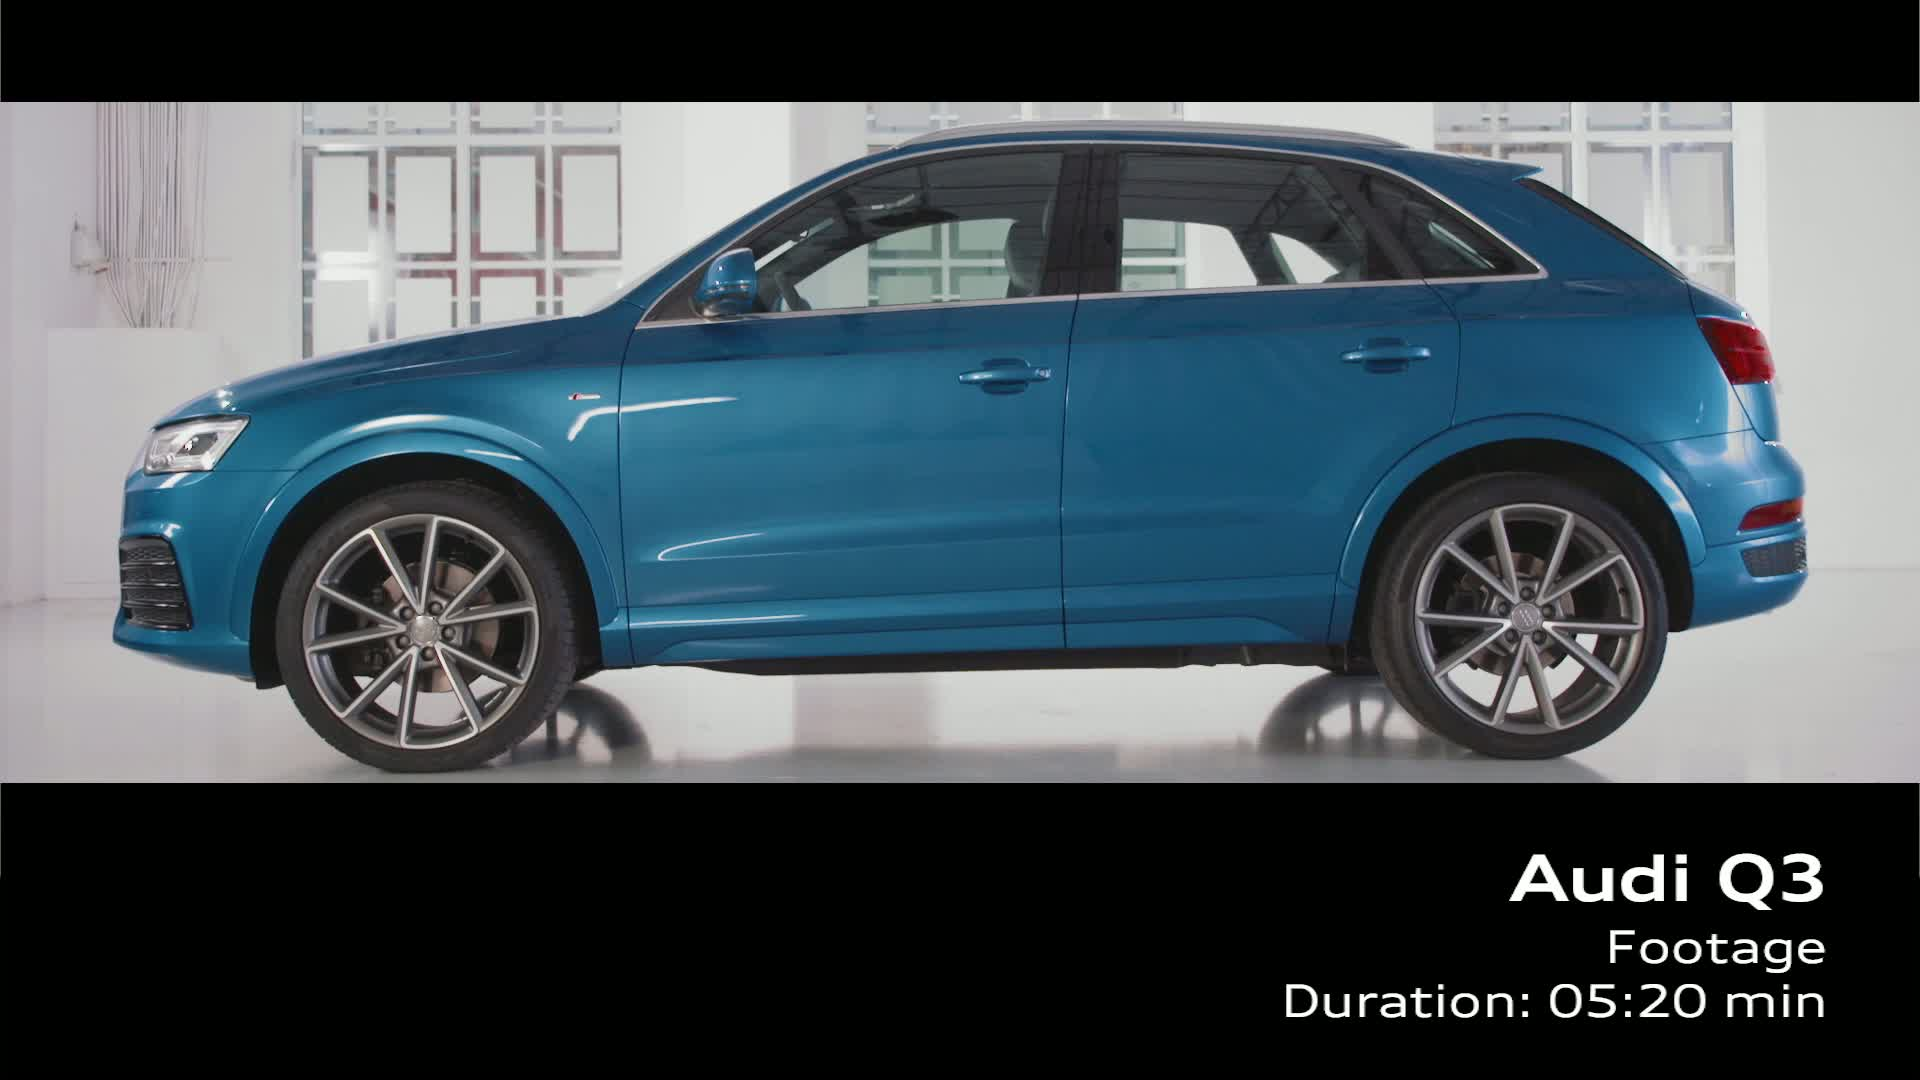 The new Audi Q3 - Footage